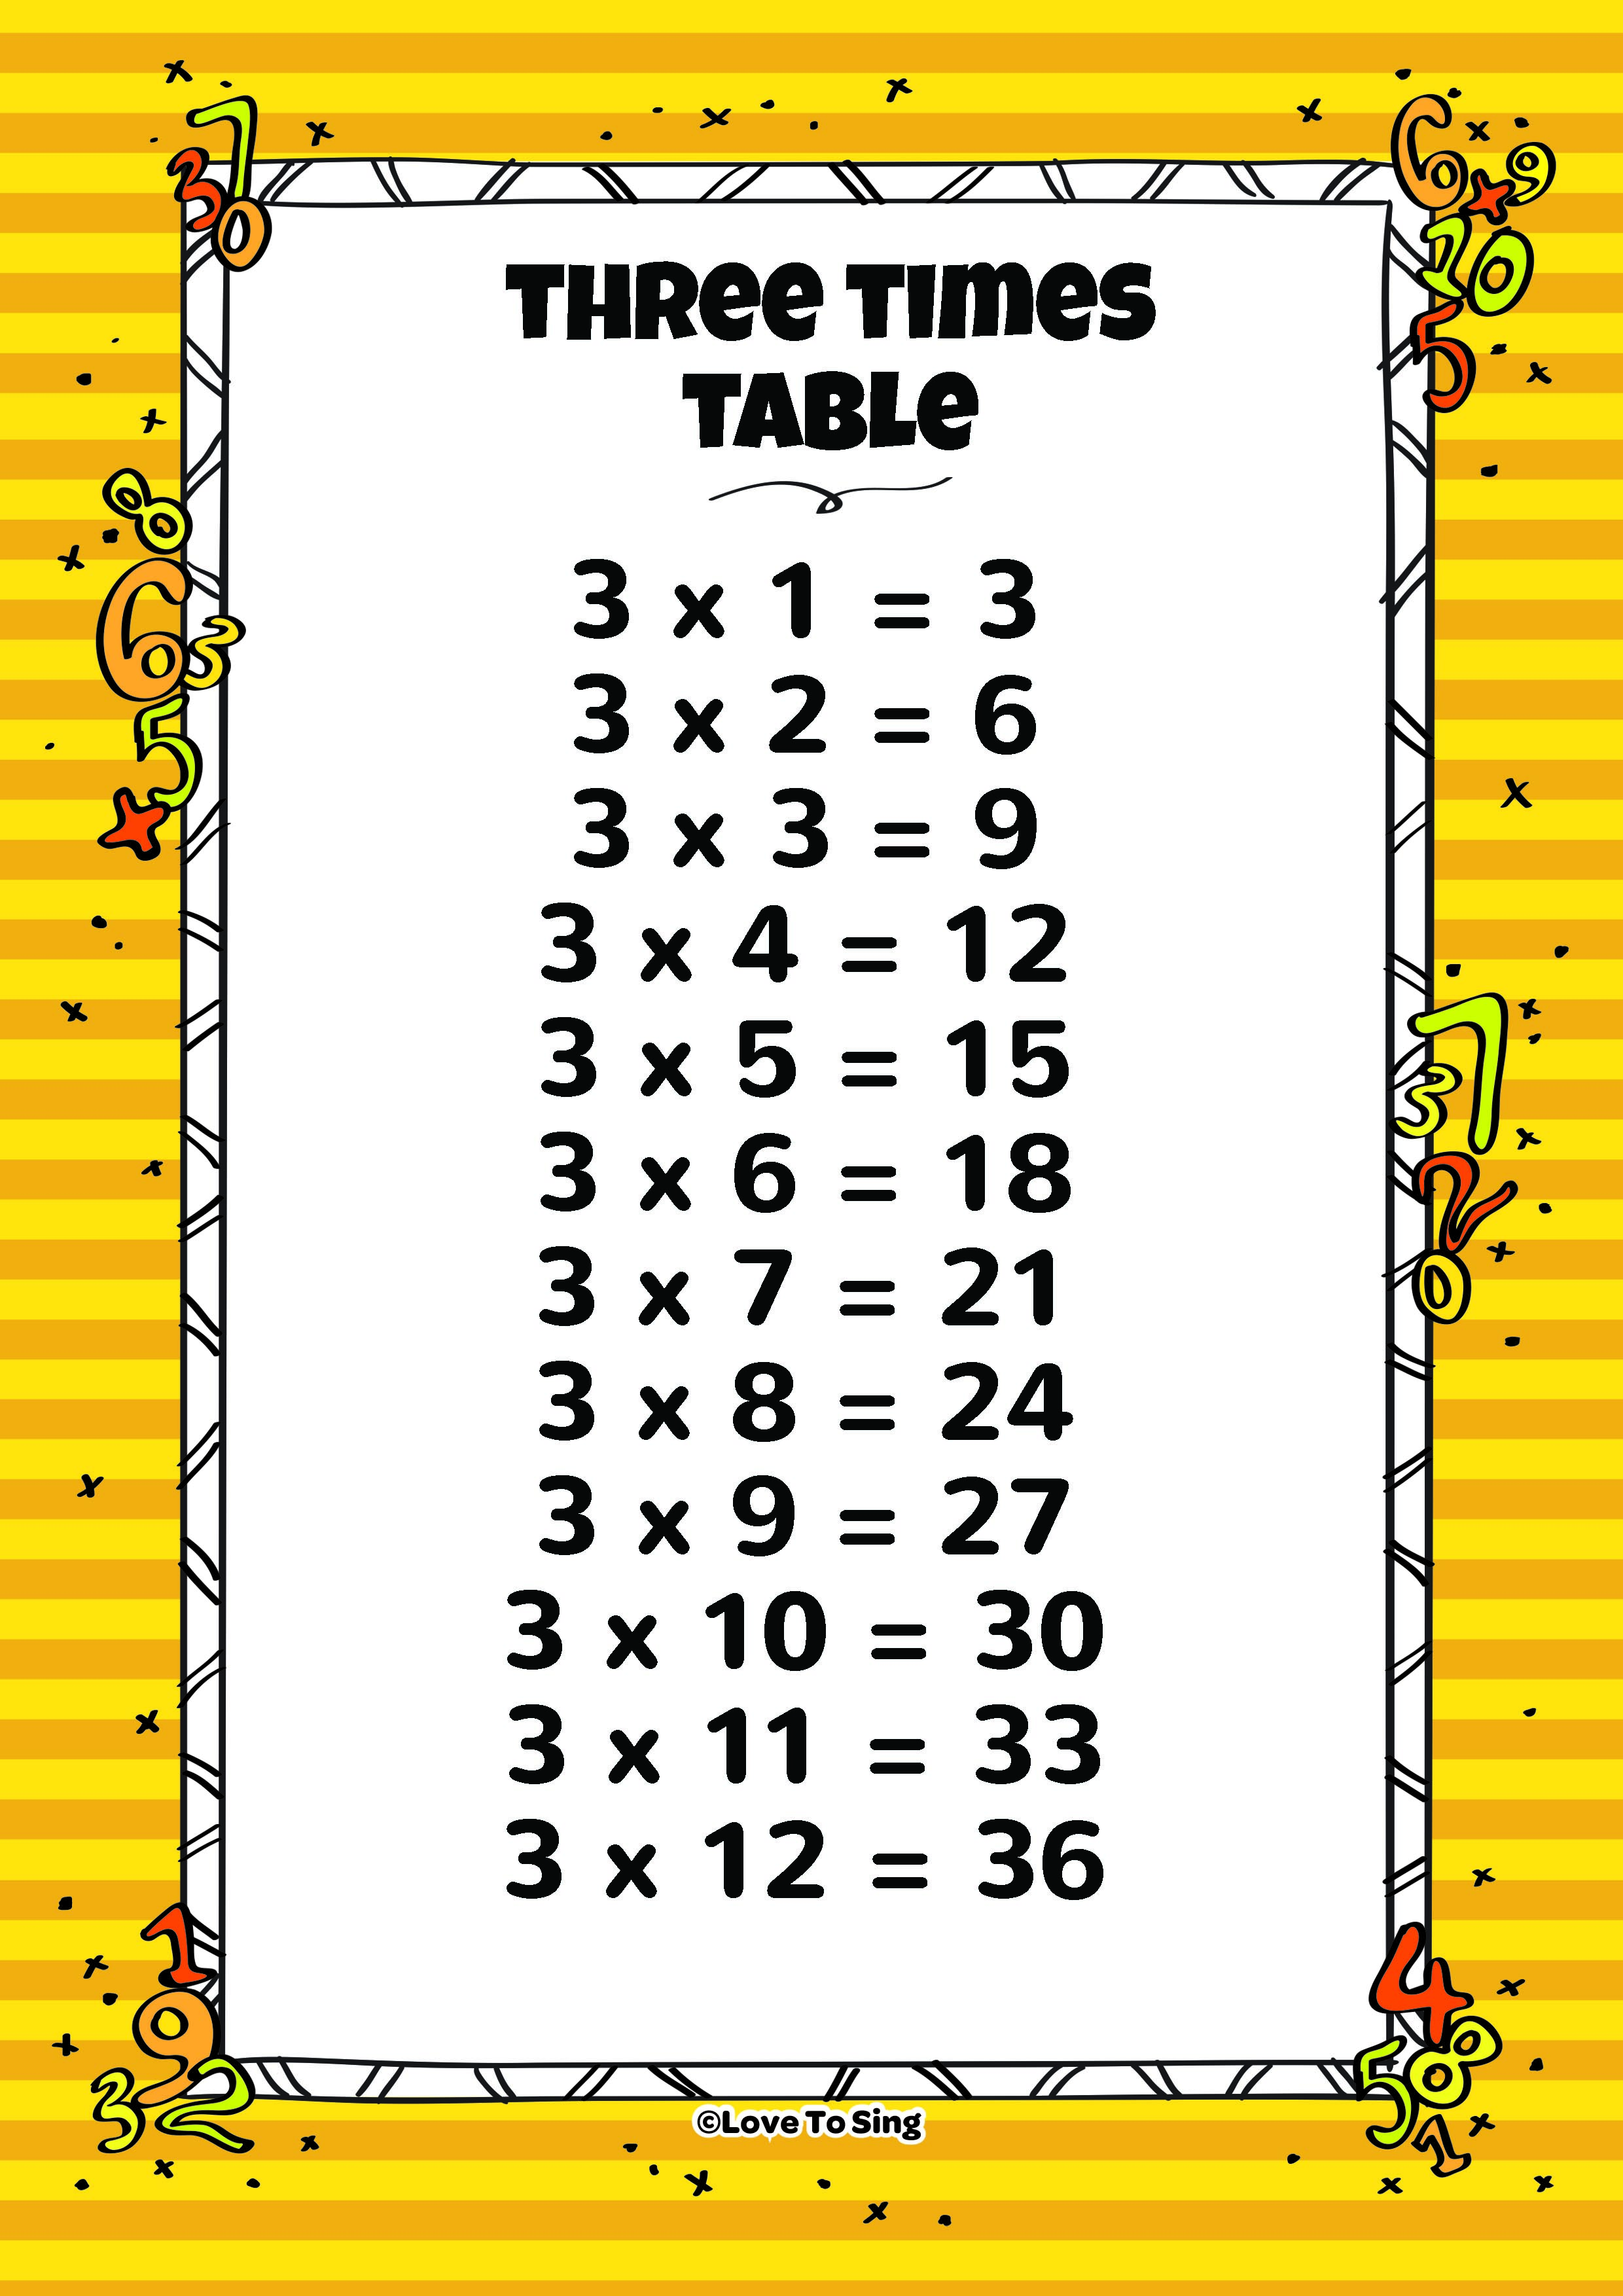 Three times table and random test kids video song with free download printable pdf gamestrikefo Image collections